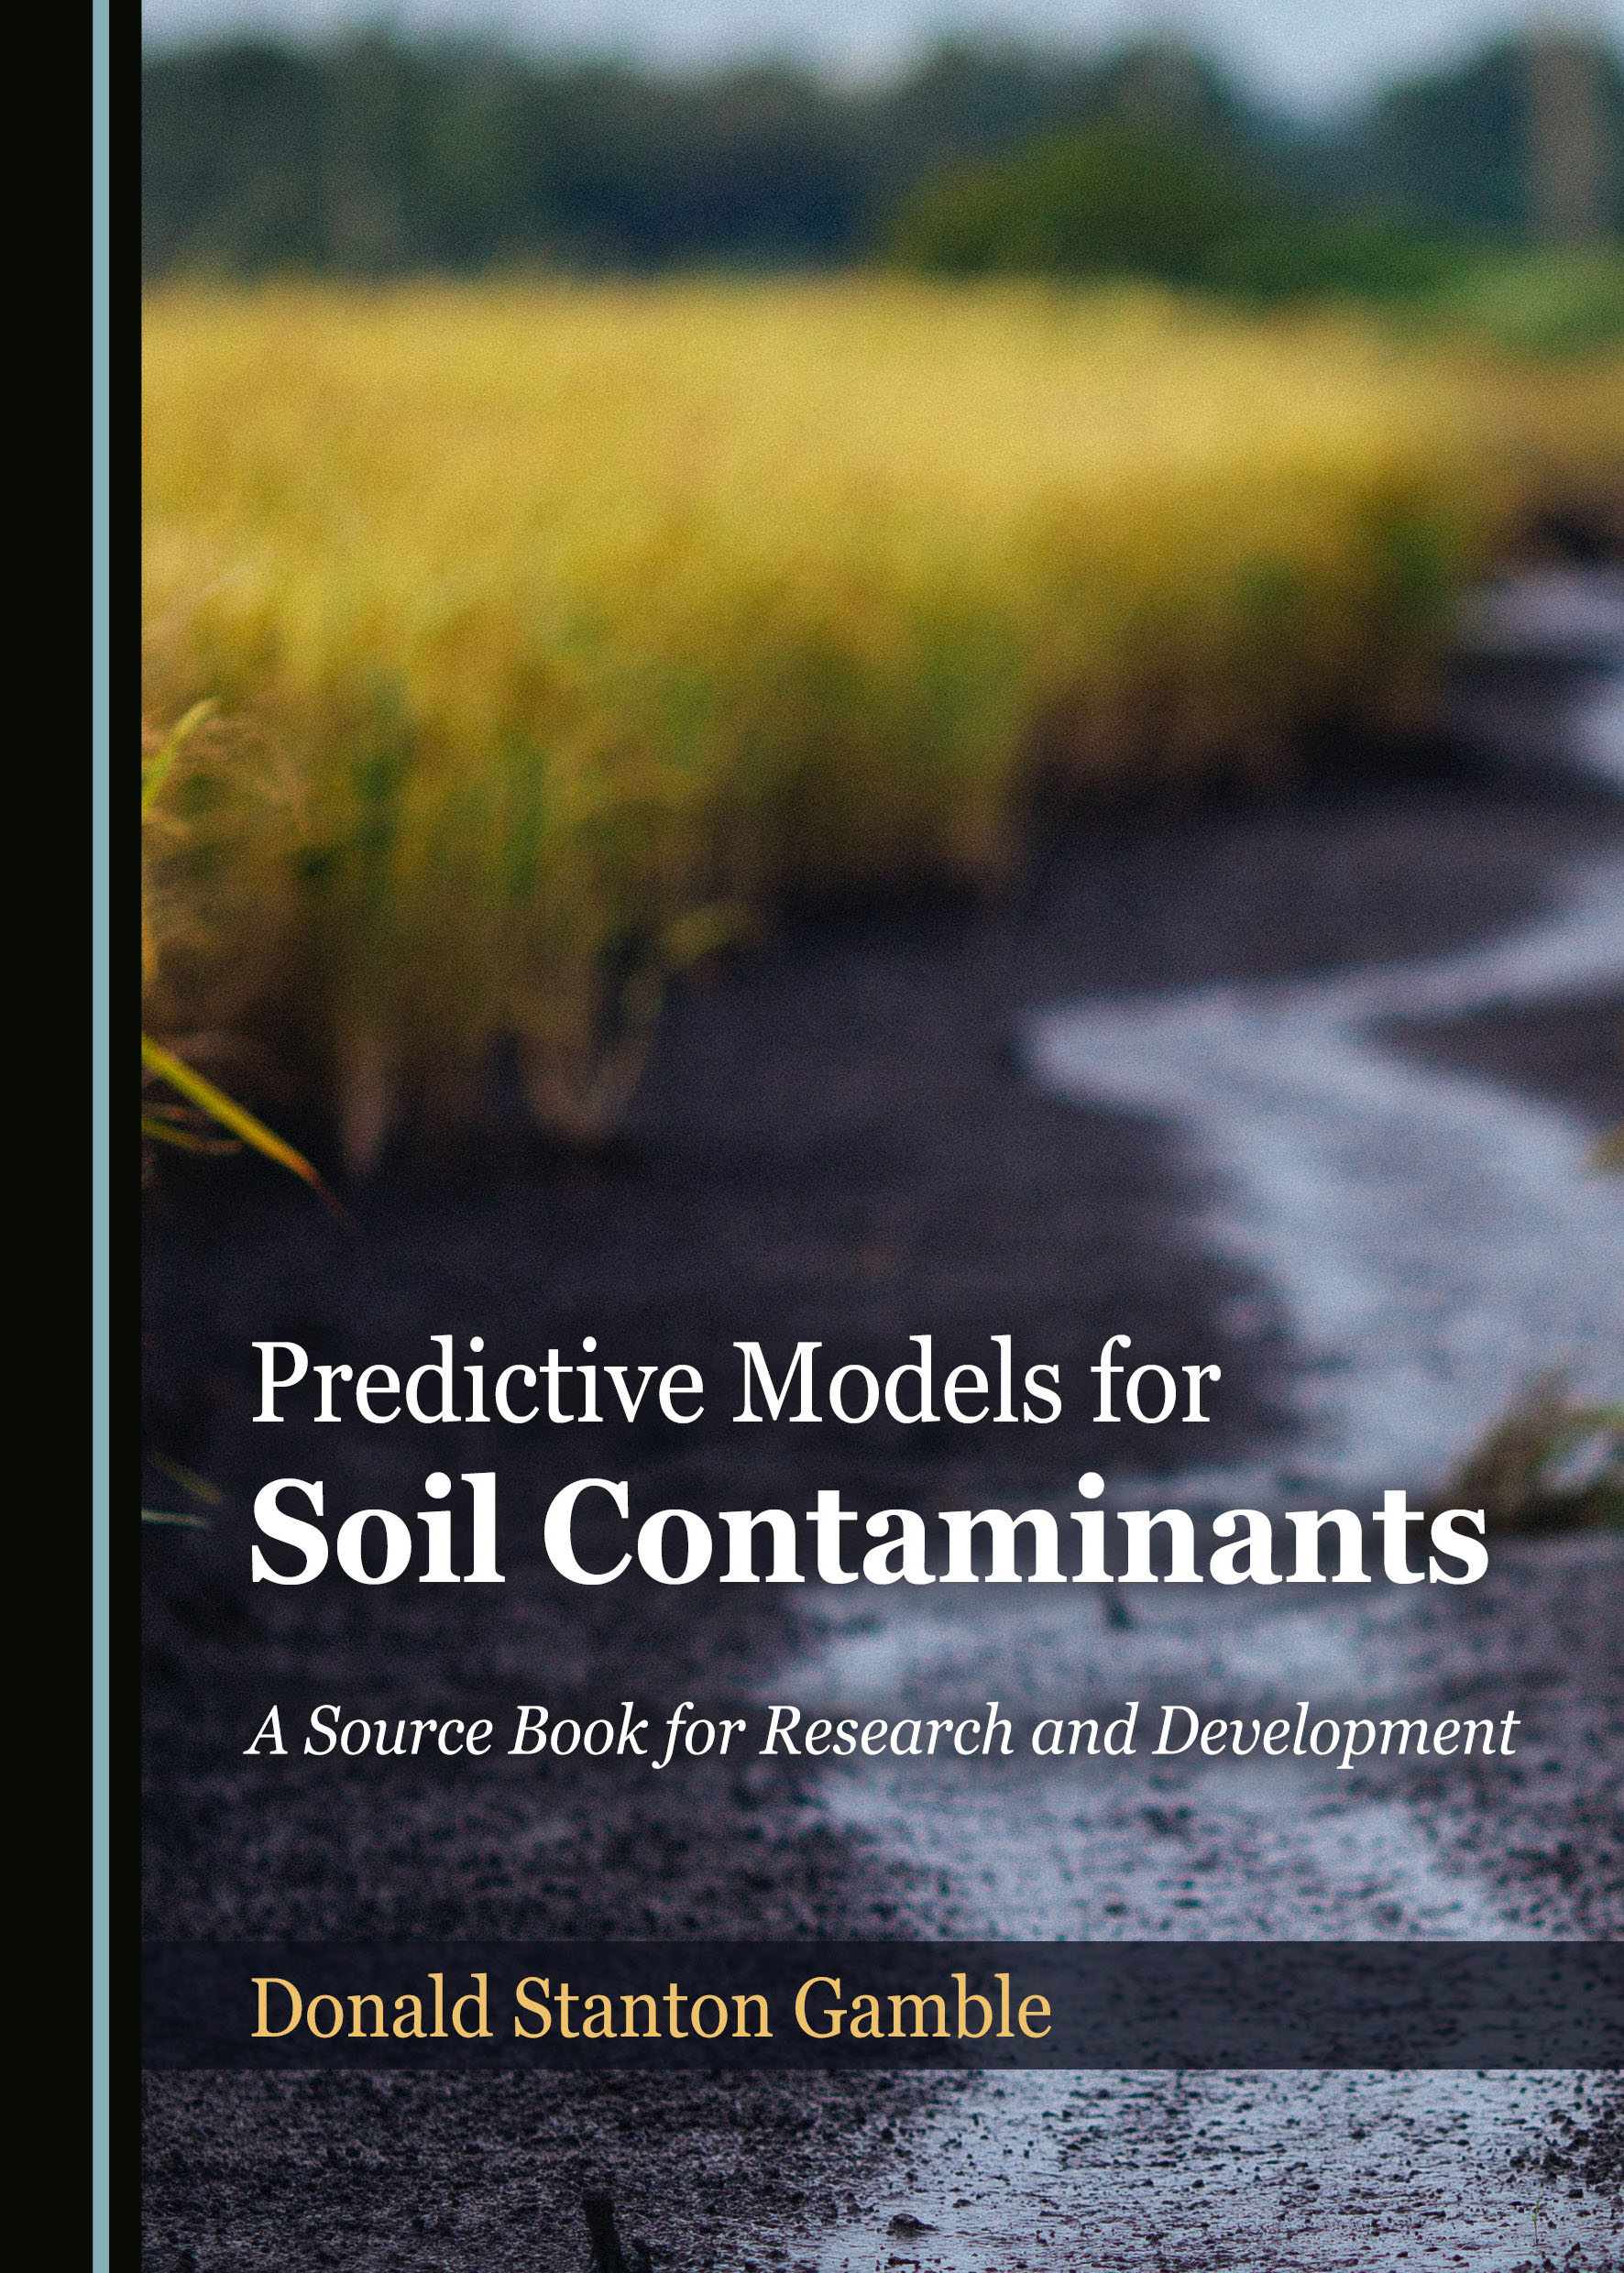 Predictive Models for Soil Contaminants: A Source Book for Research and Development